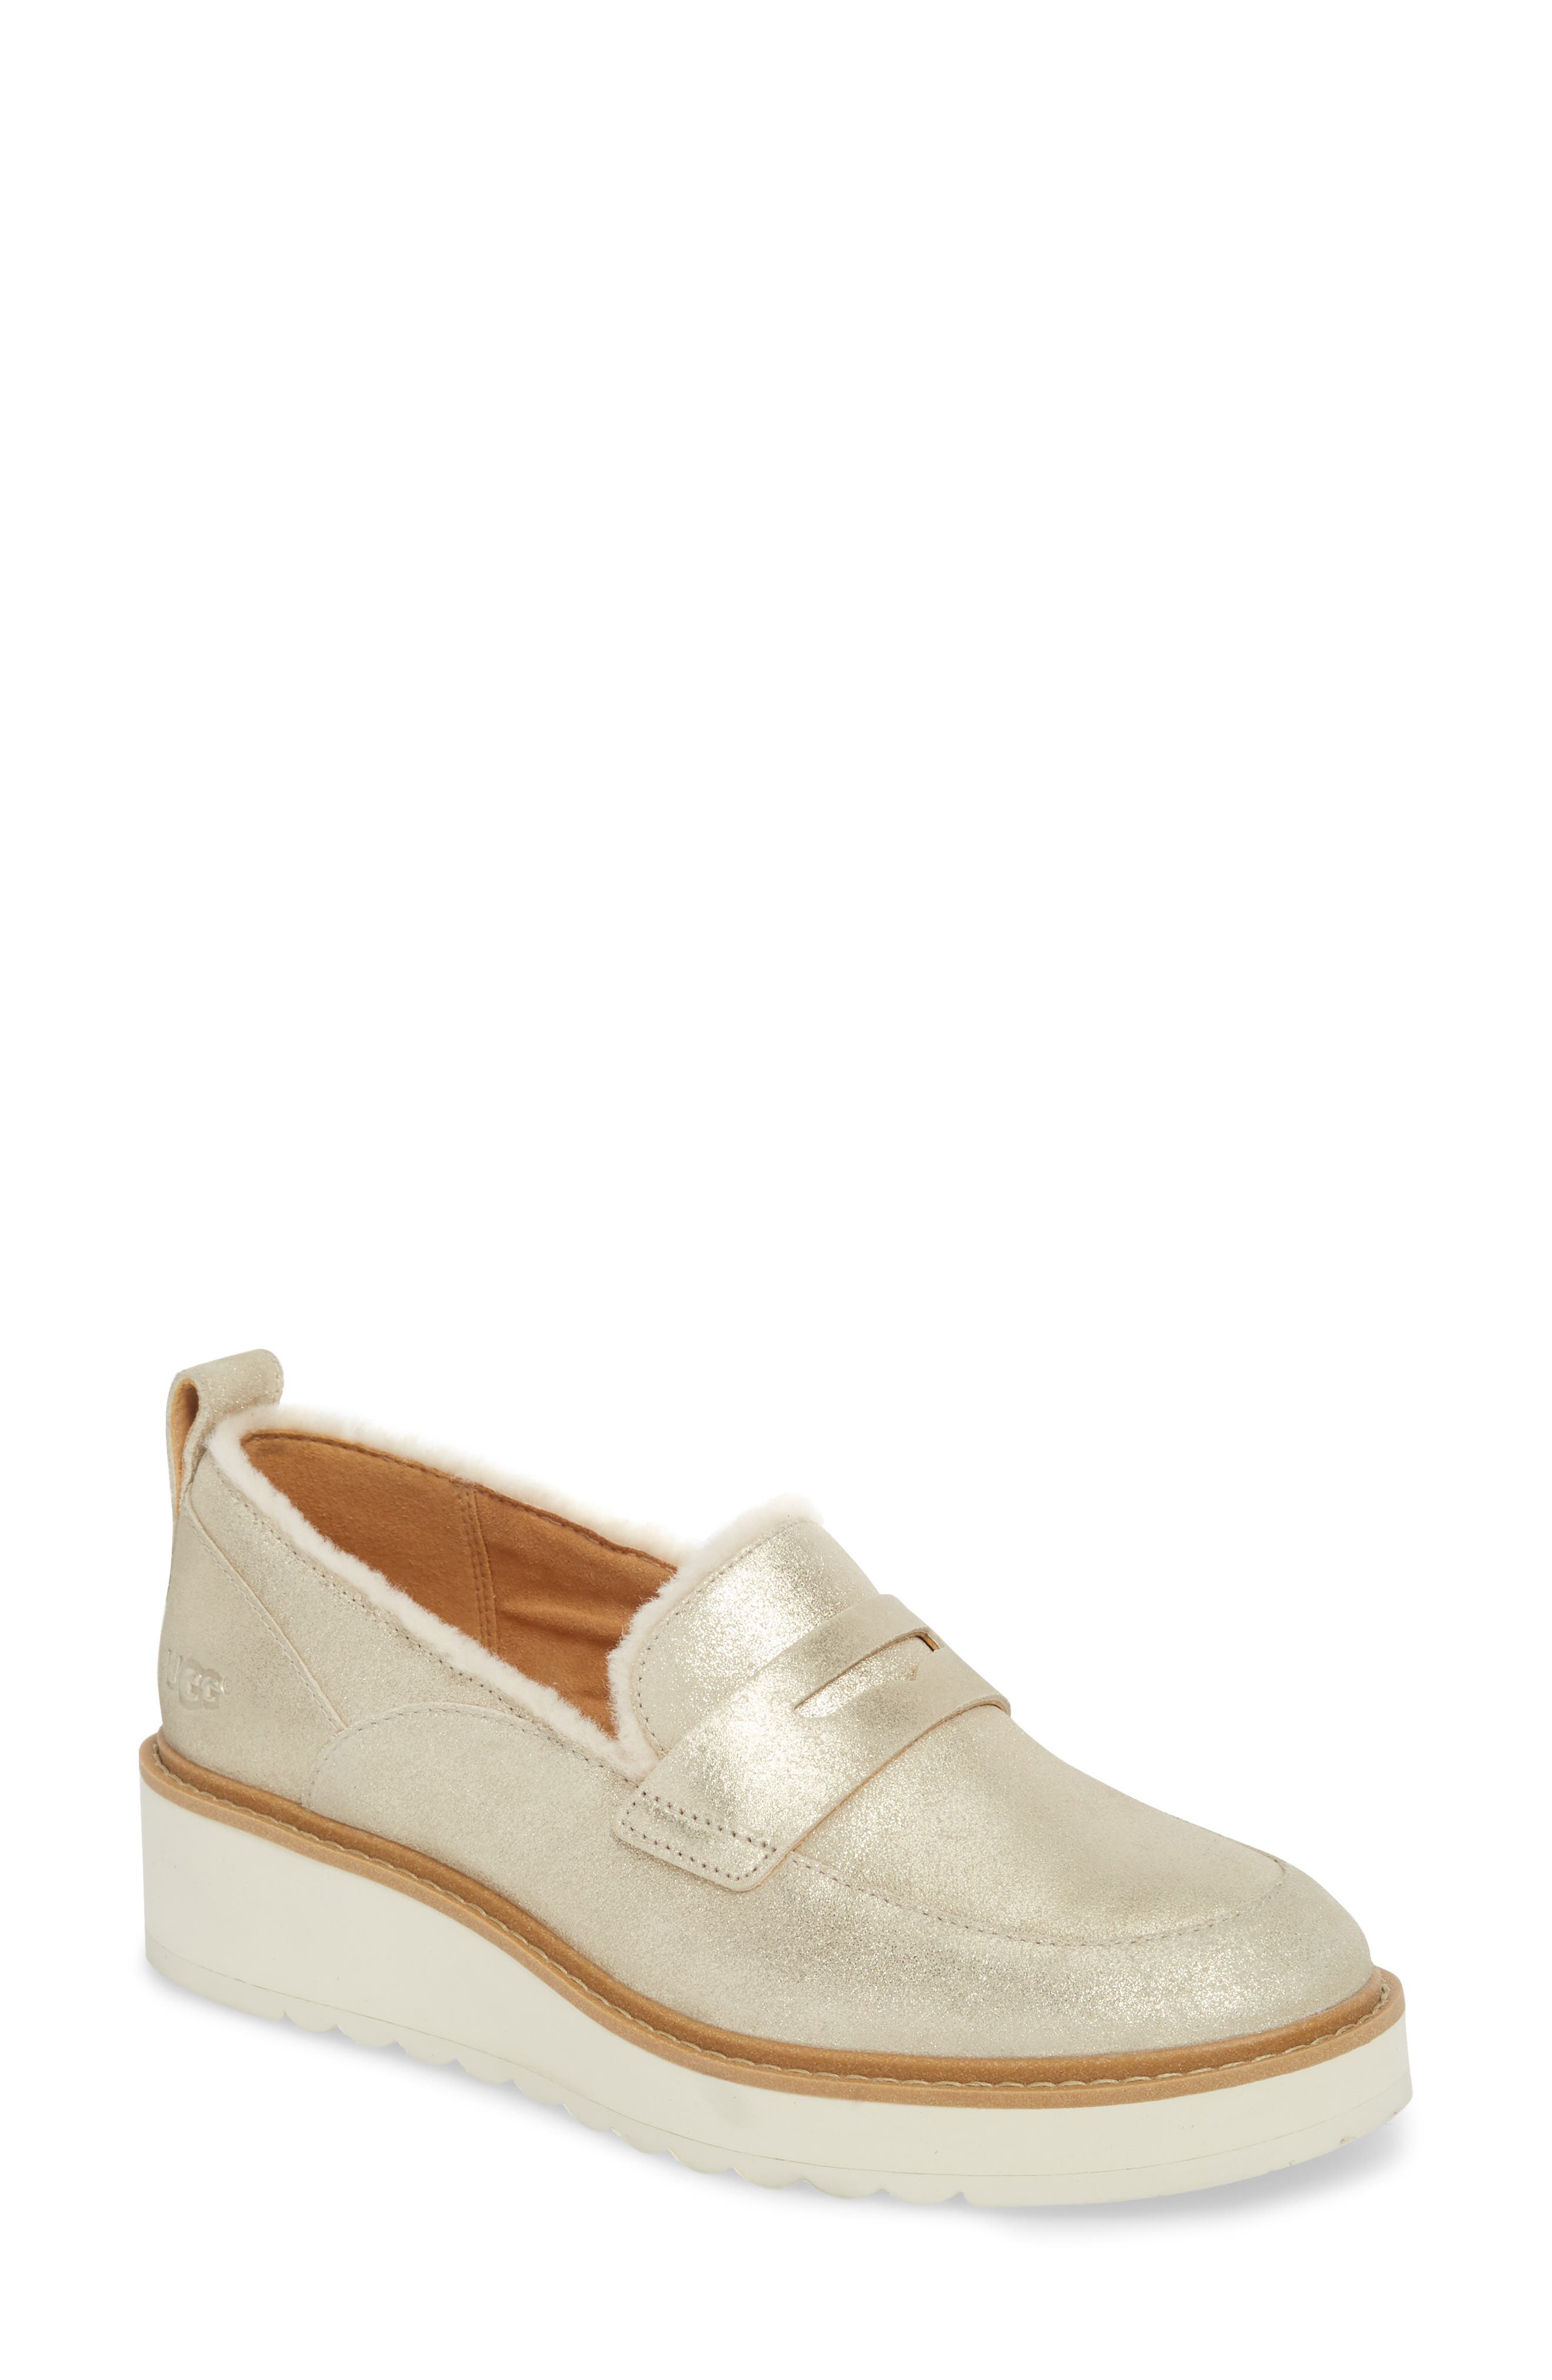 Atwater Metallic Wedge Loafer,                         Main,                         color, 710